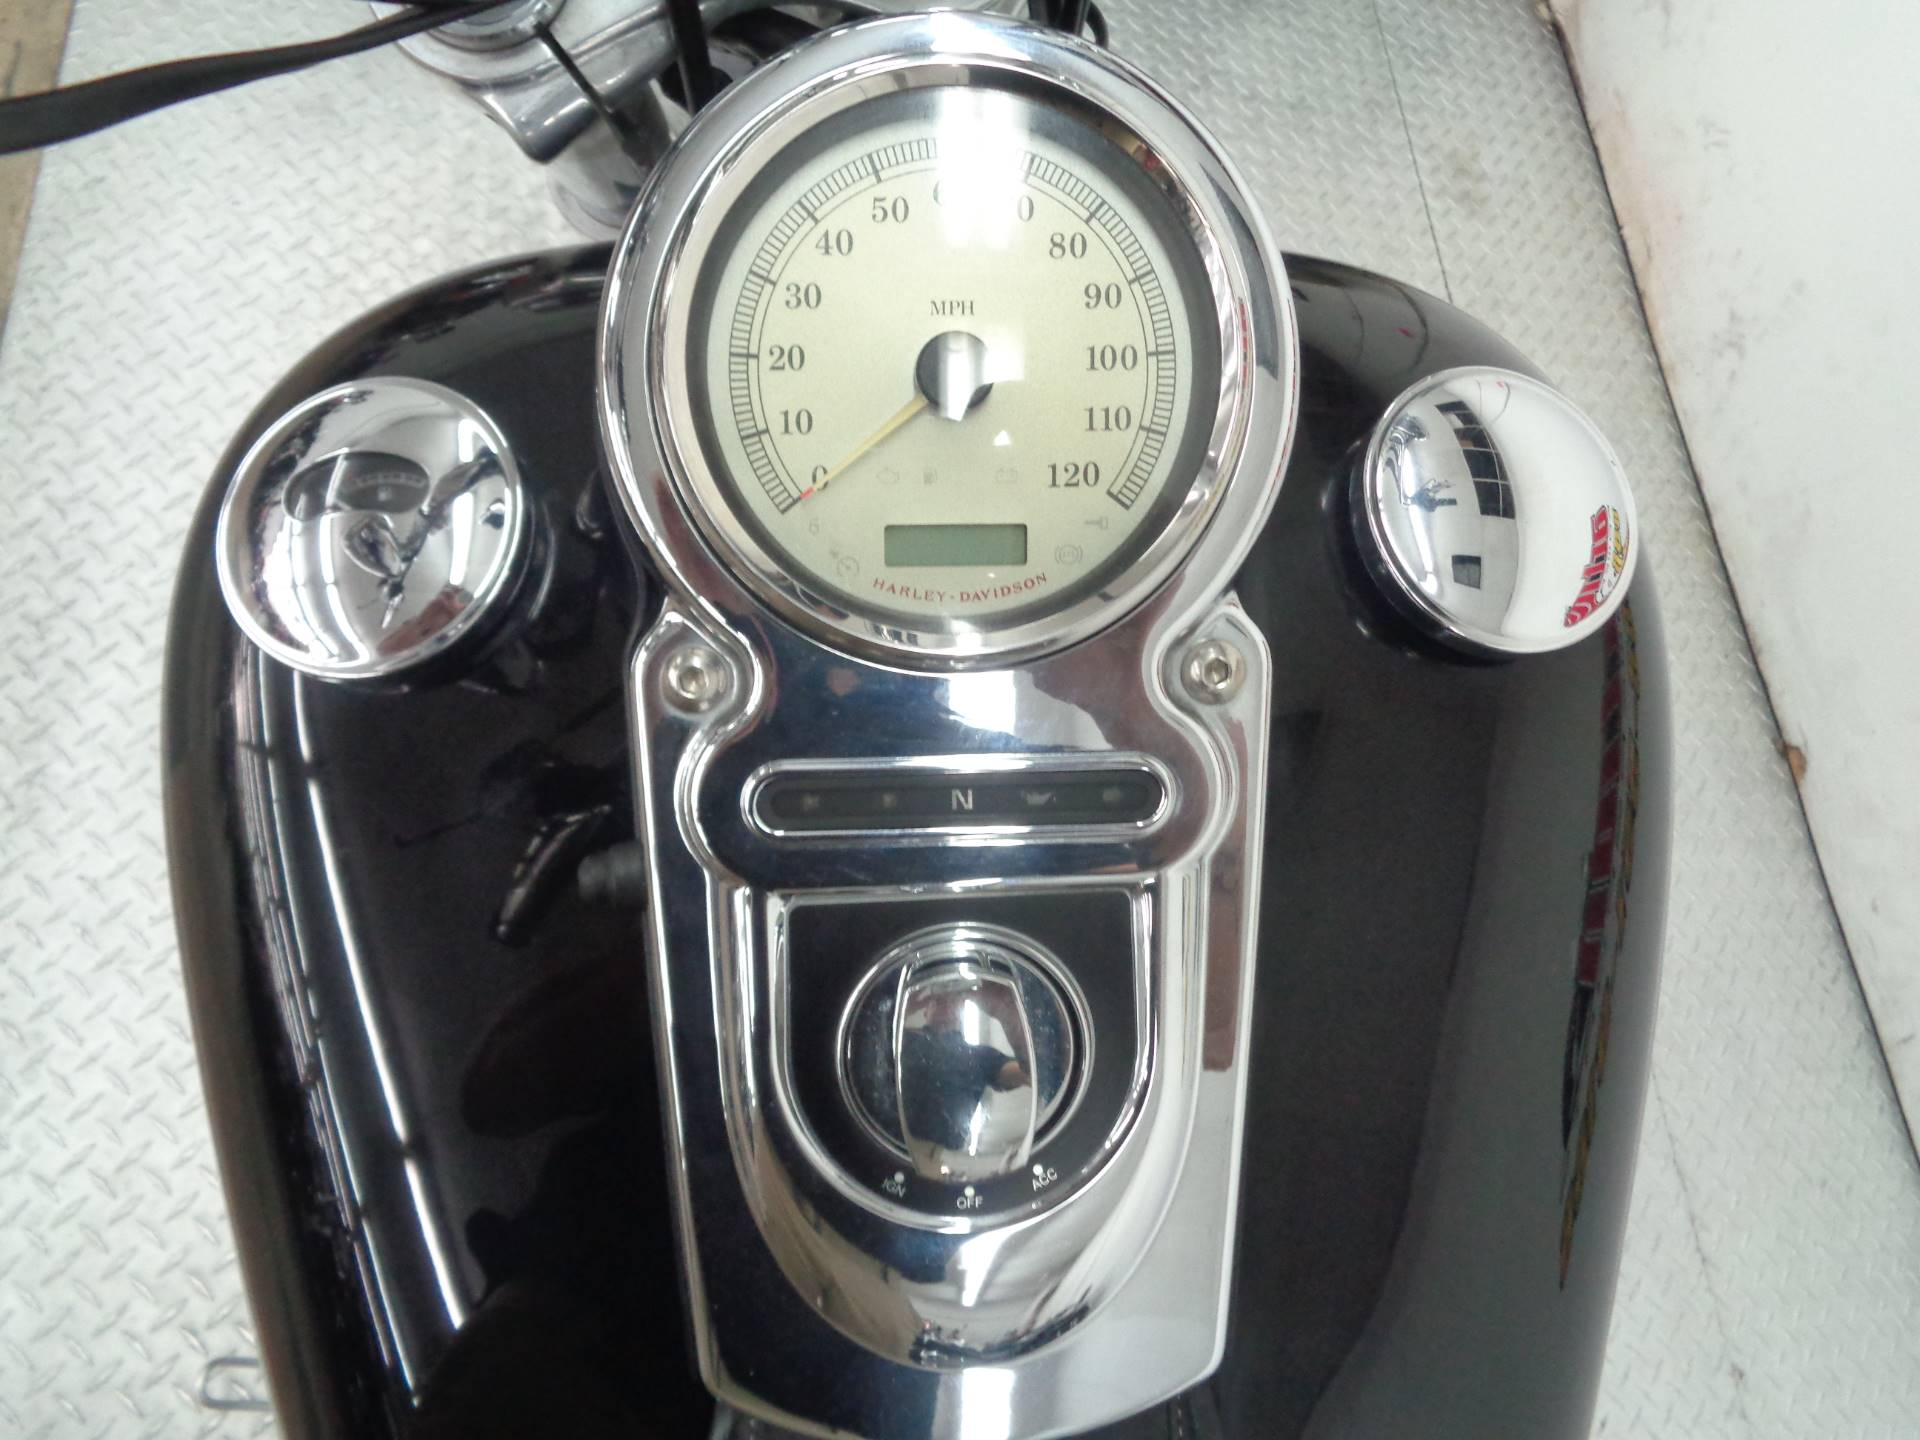 2009 Harley-Davidson Dyna Super Glide Custom in Tulsa, Oklahoma - Photo 6